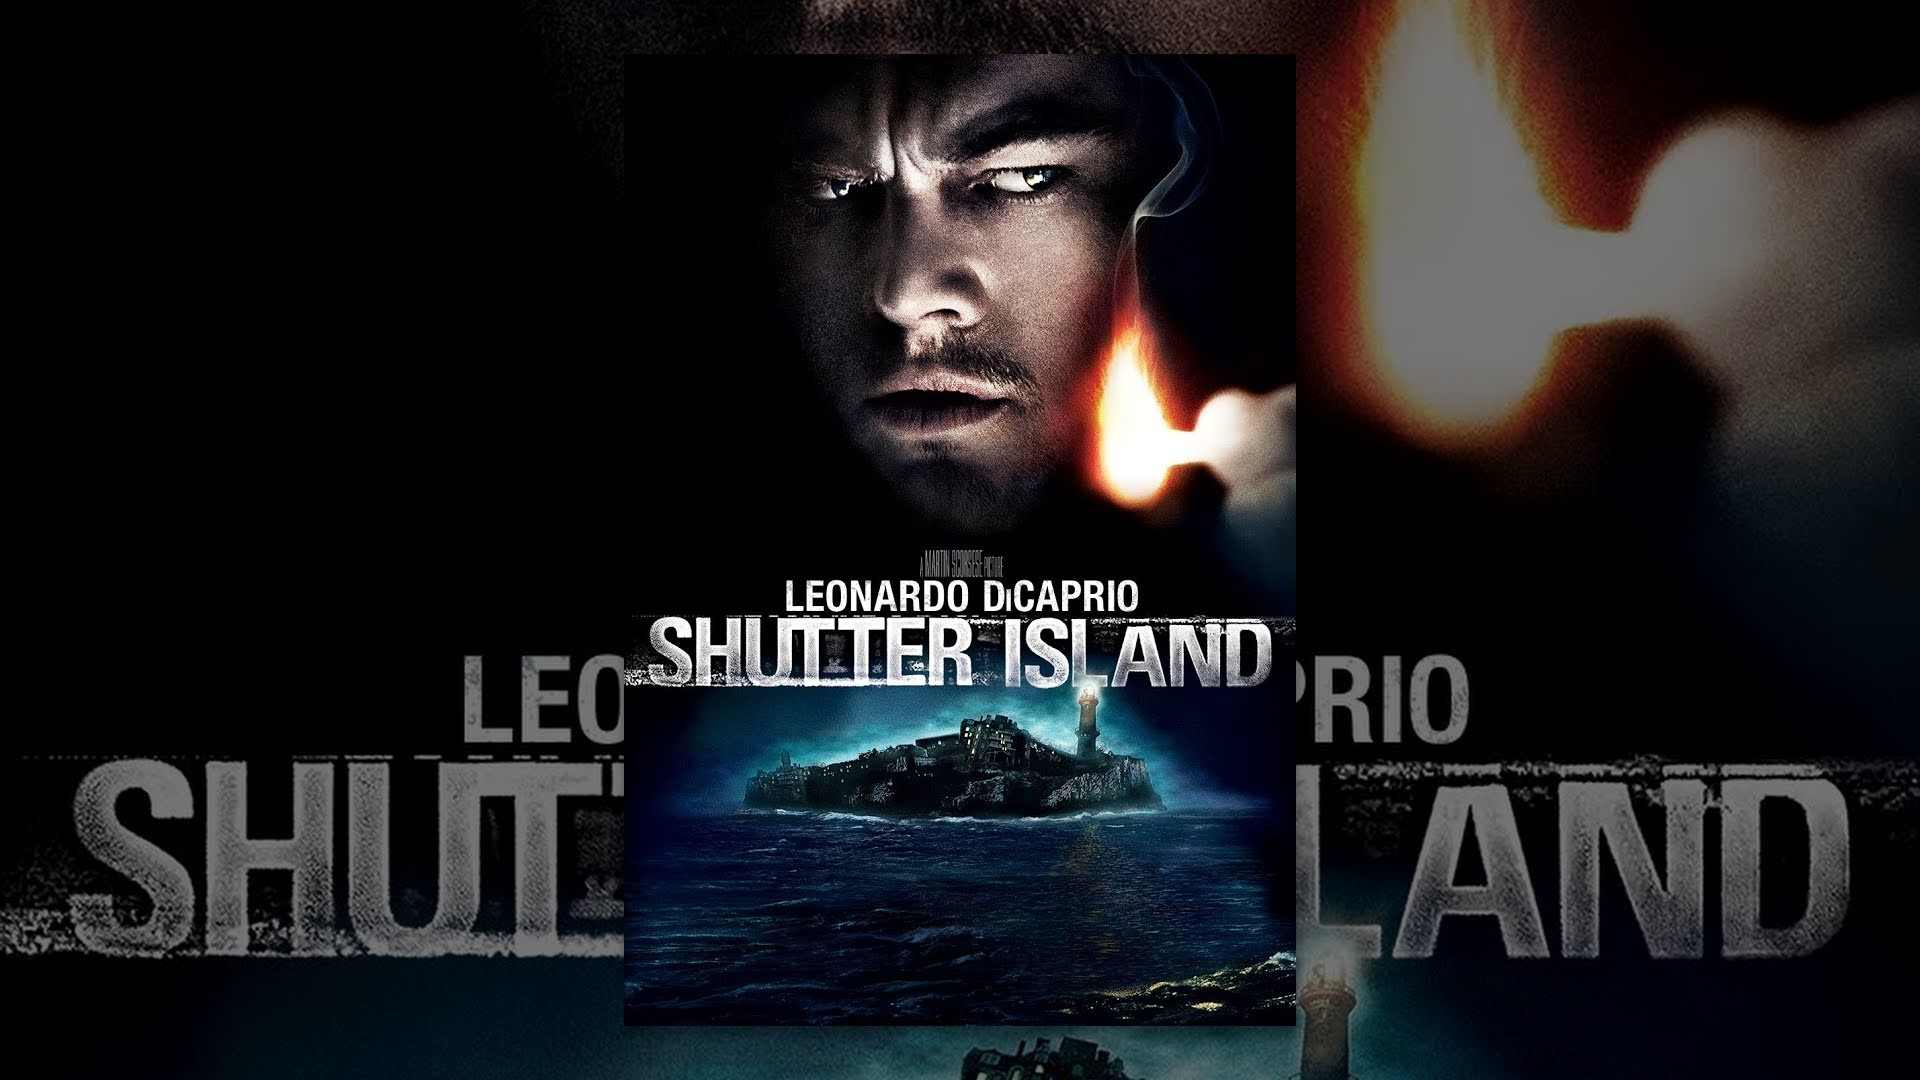 shutter island theme The shutter island soundtrack theme by mhutagalung | due to the amount of speculation and hearsay, site should be read for entertainment purposes only.